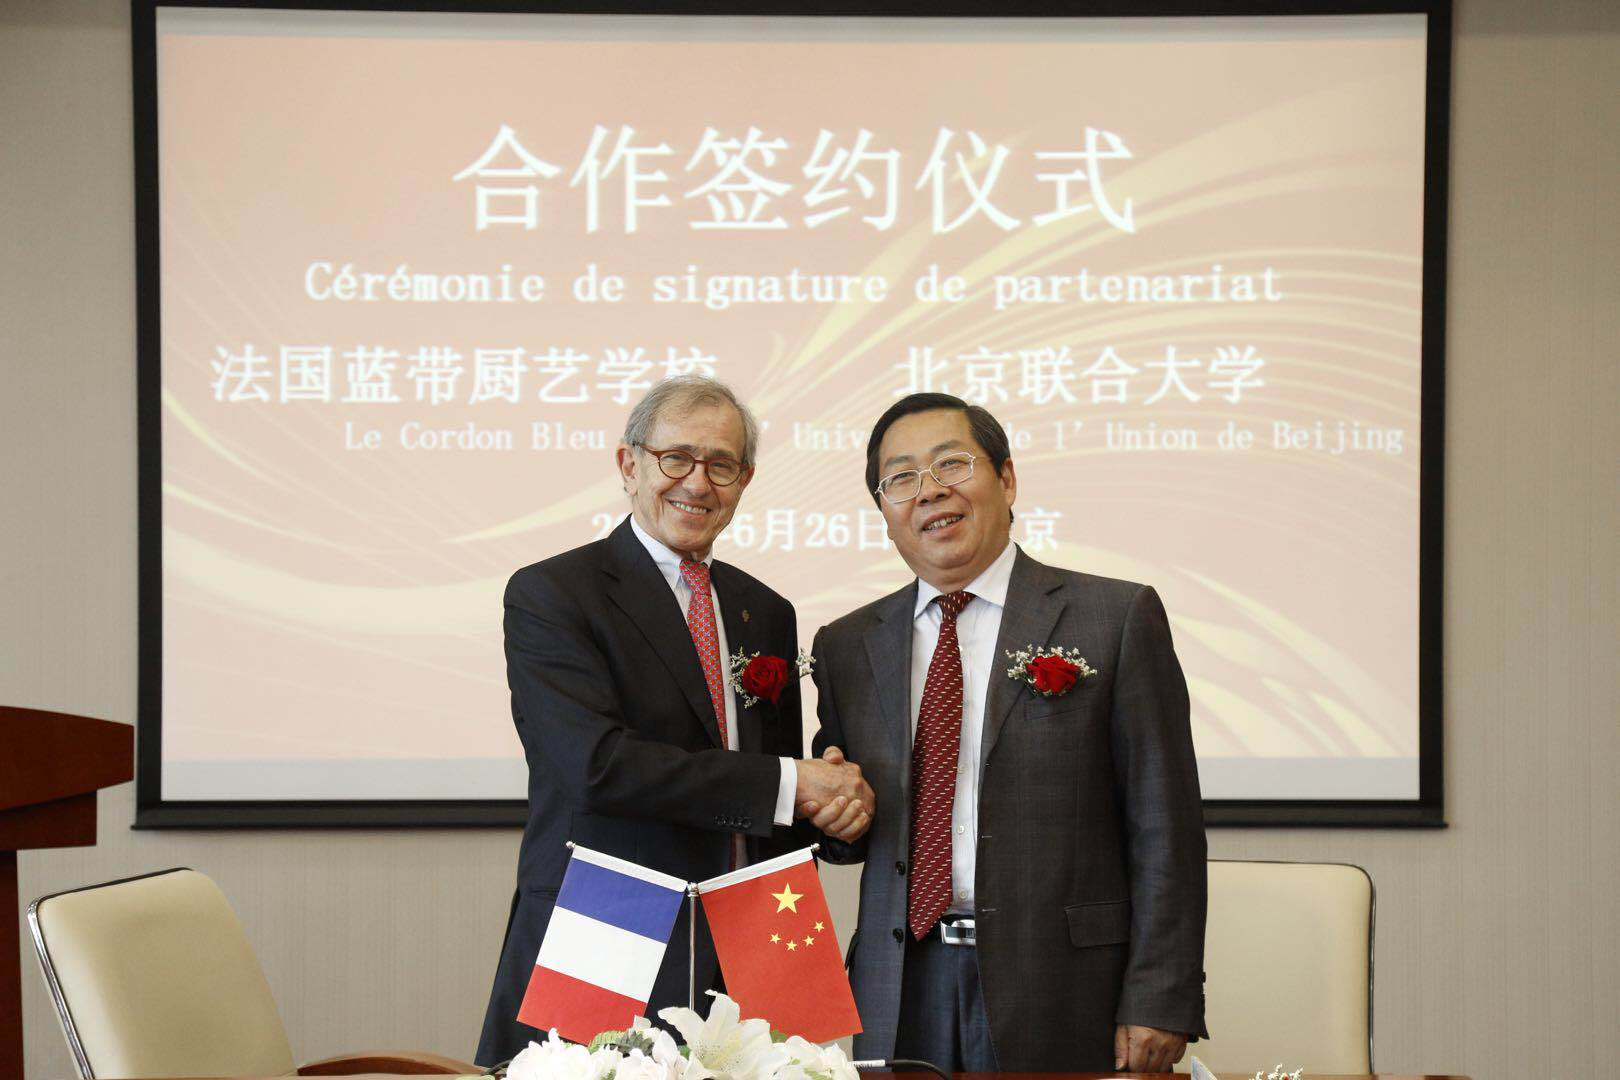 Le Cordon Bleu Y Tourism College Of Beijing Union University Firman Acuerdo